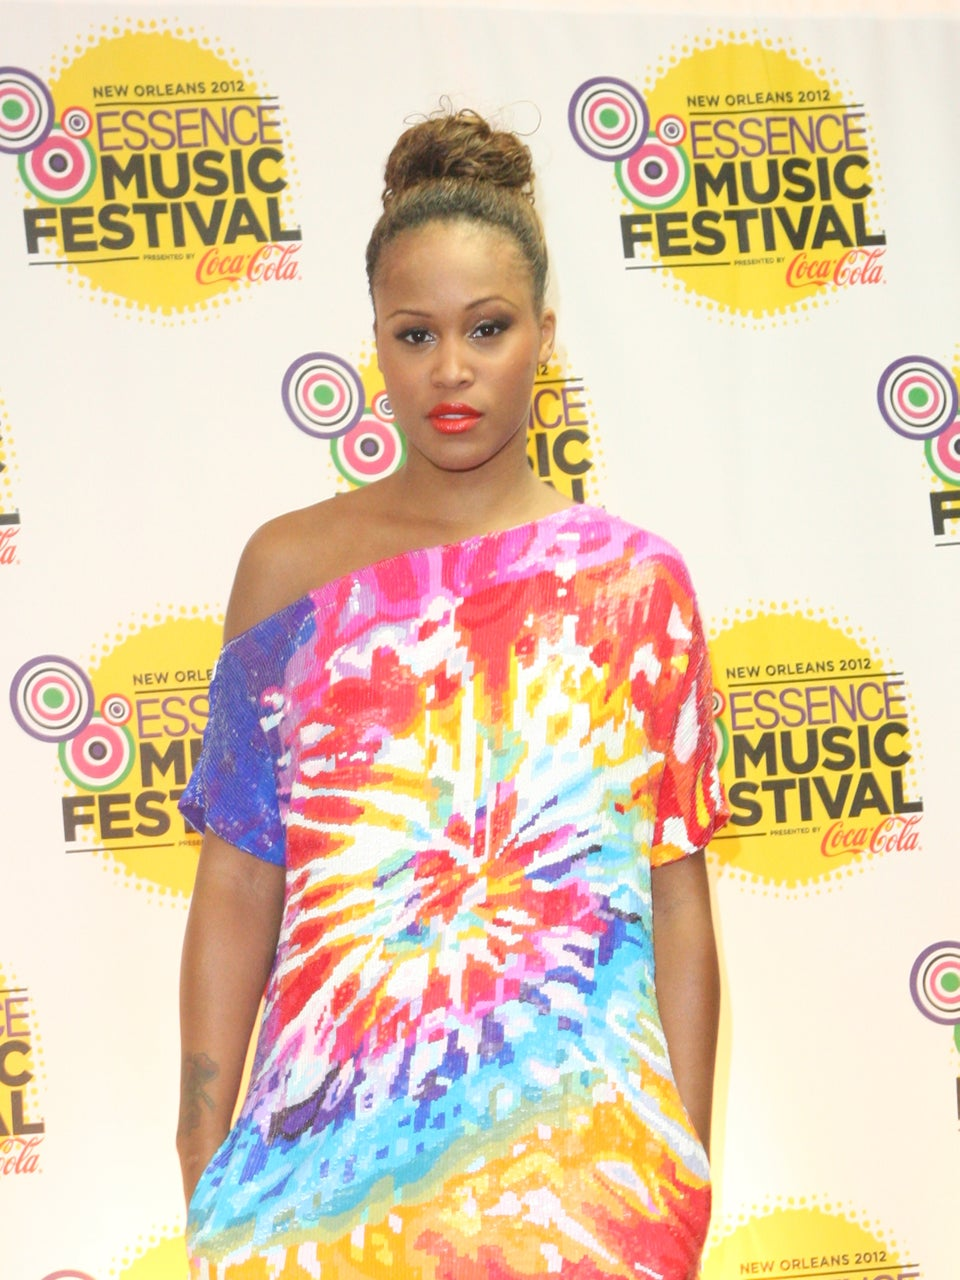 The History Of Women In Hip Hop At ESSENCE Festival